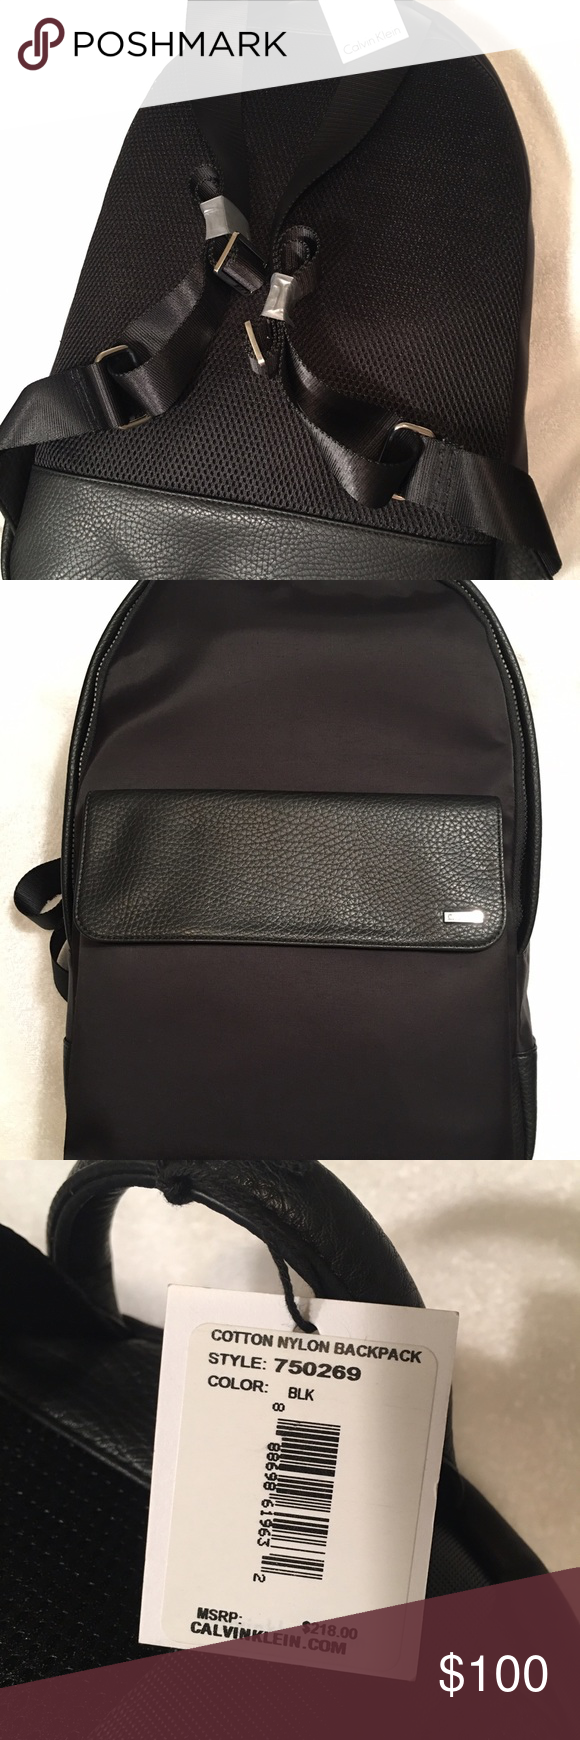 Calvin Klein athletic nylon/leather backpack calvin klein unisex athletic nylon/leather backpack black  -an athletic nylon backpack bag designed with nylon and leather trim, multiple storage options and adjustable shoulder straps. -athletic nylon backpack -top leather handle + adjustable shoulder straps -main compartment zip closure -front zip pocket + leather pocket -logo plaque -interior storage space -fully lined -nylon + leather -universal unisex style Calvin Klein Bags Backpacks